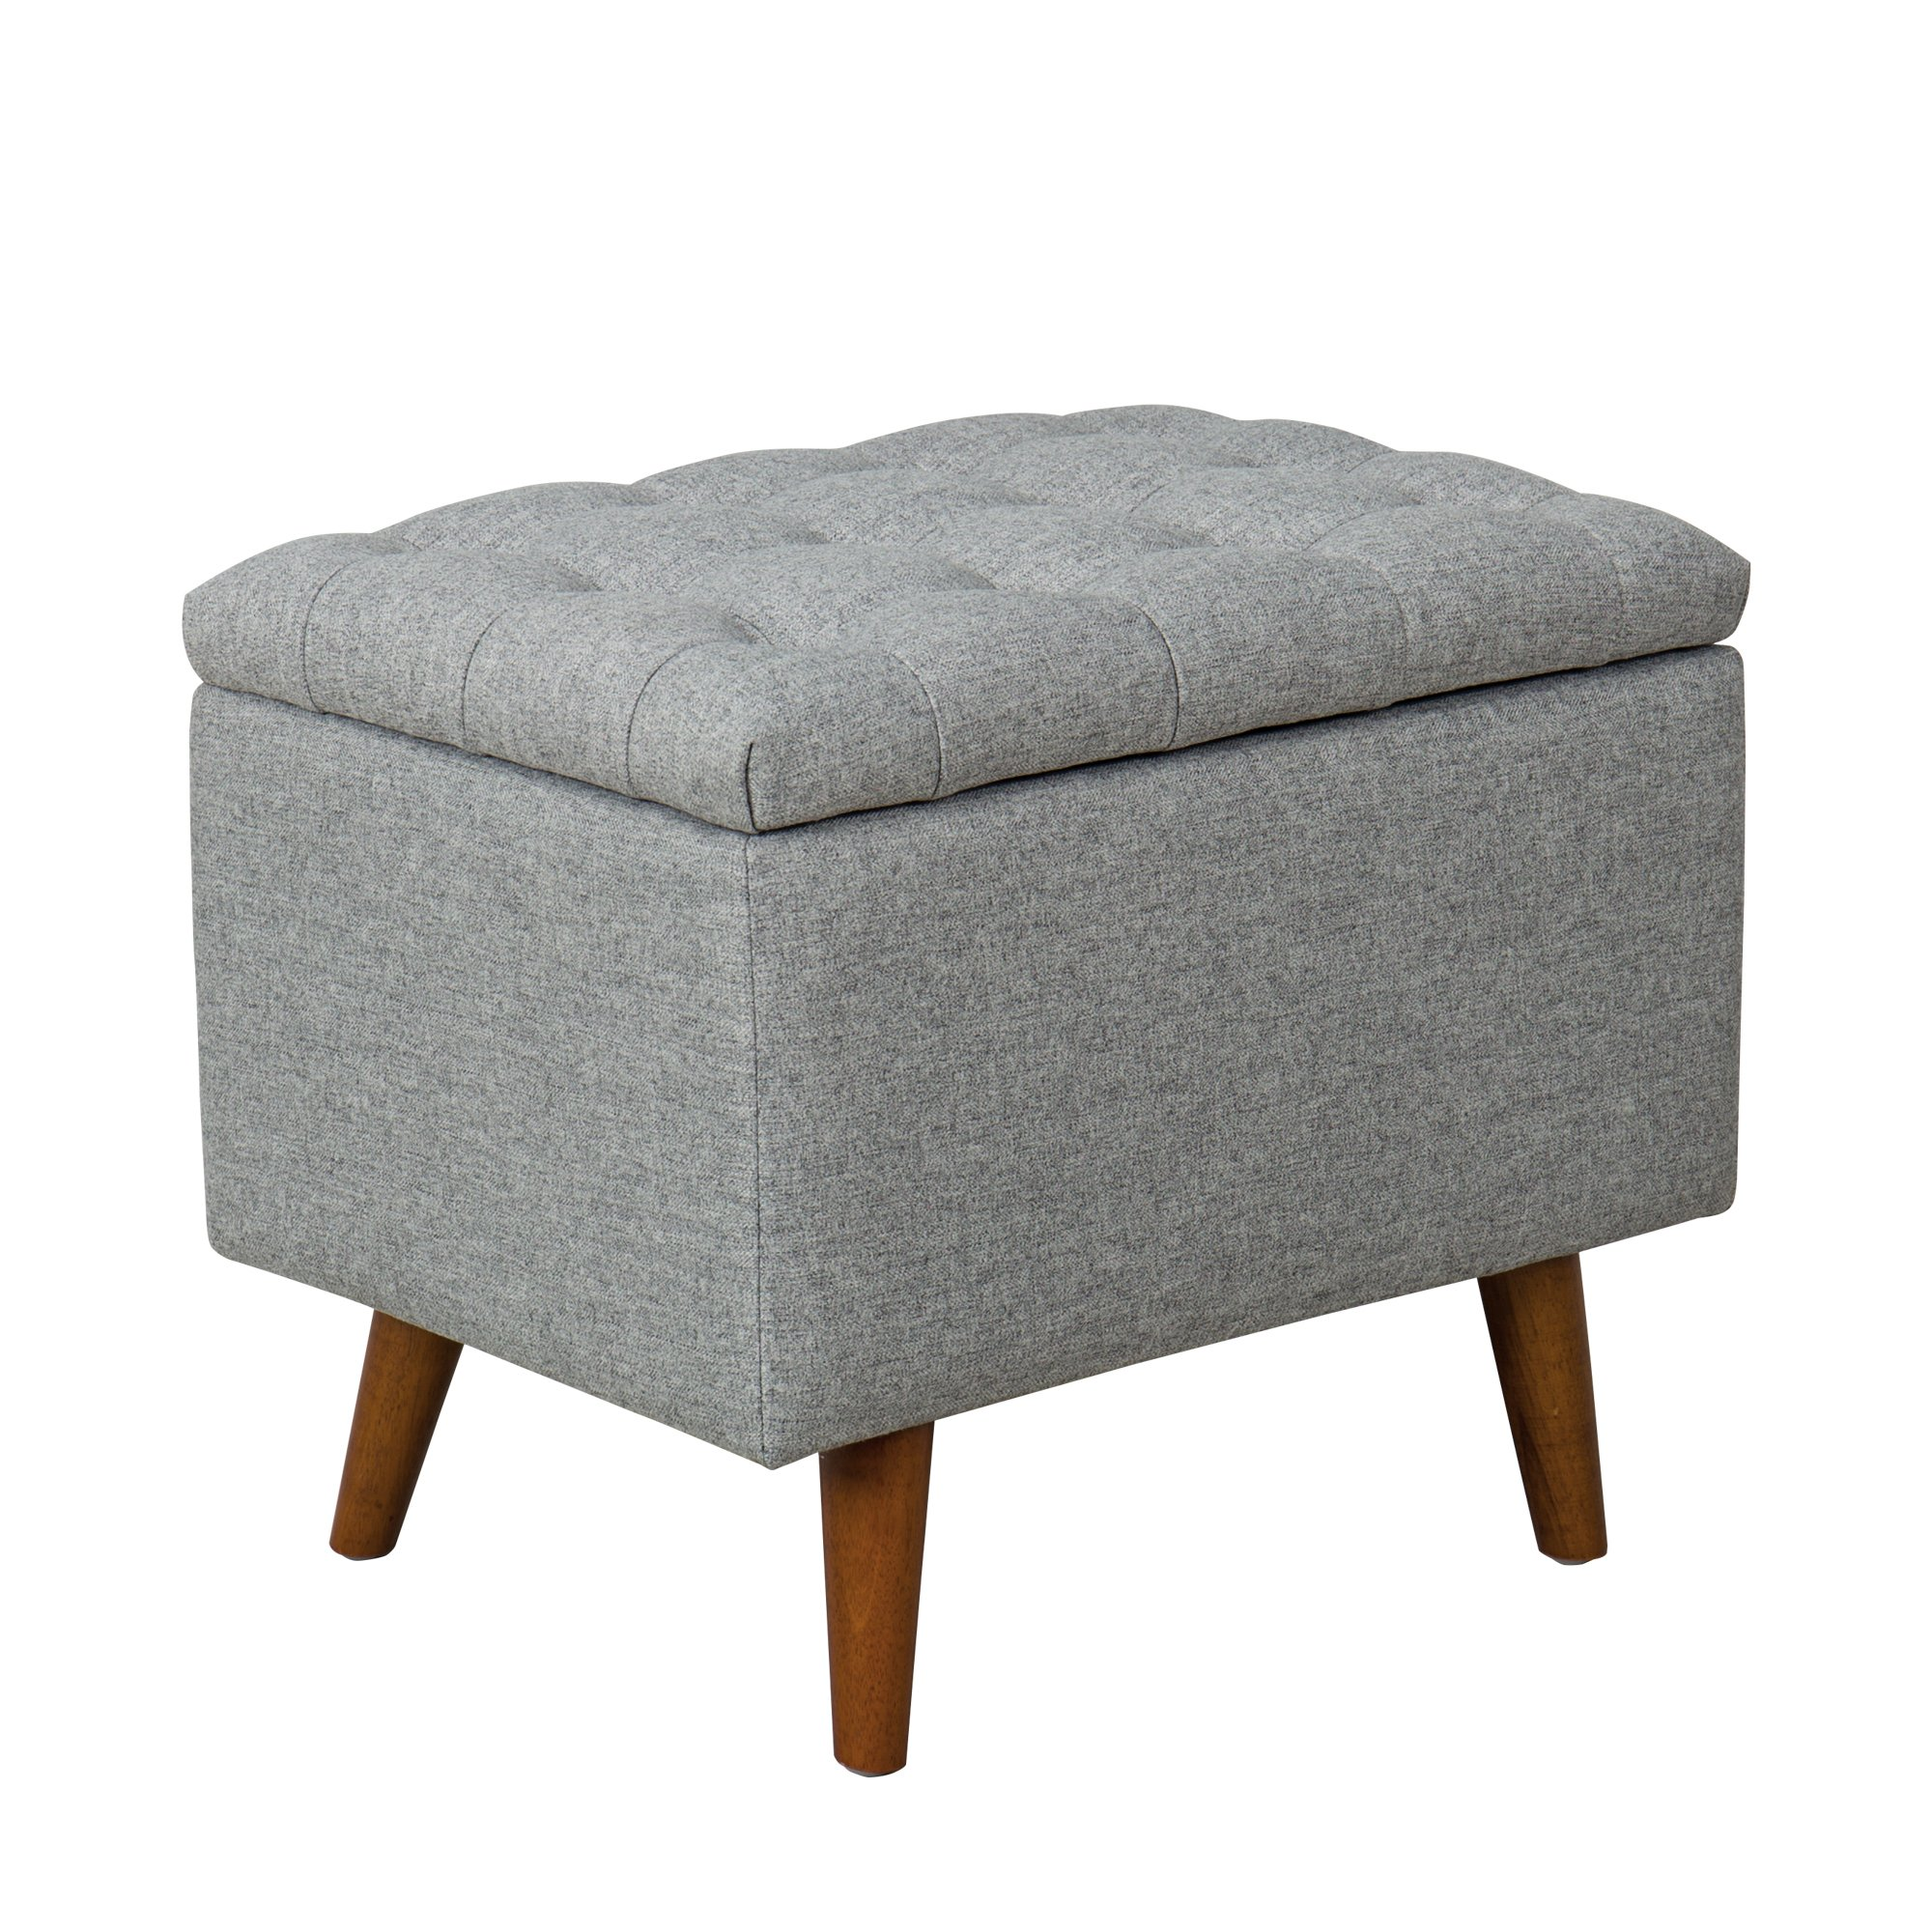 Spatial Order Kaufmann Modern Storage Bench with Button Tufting, Light Gray